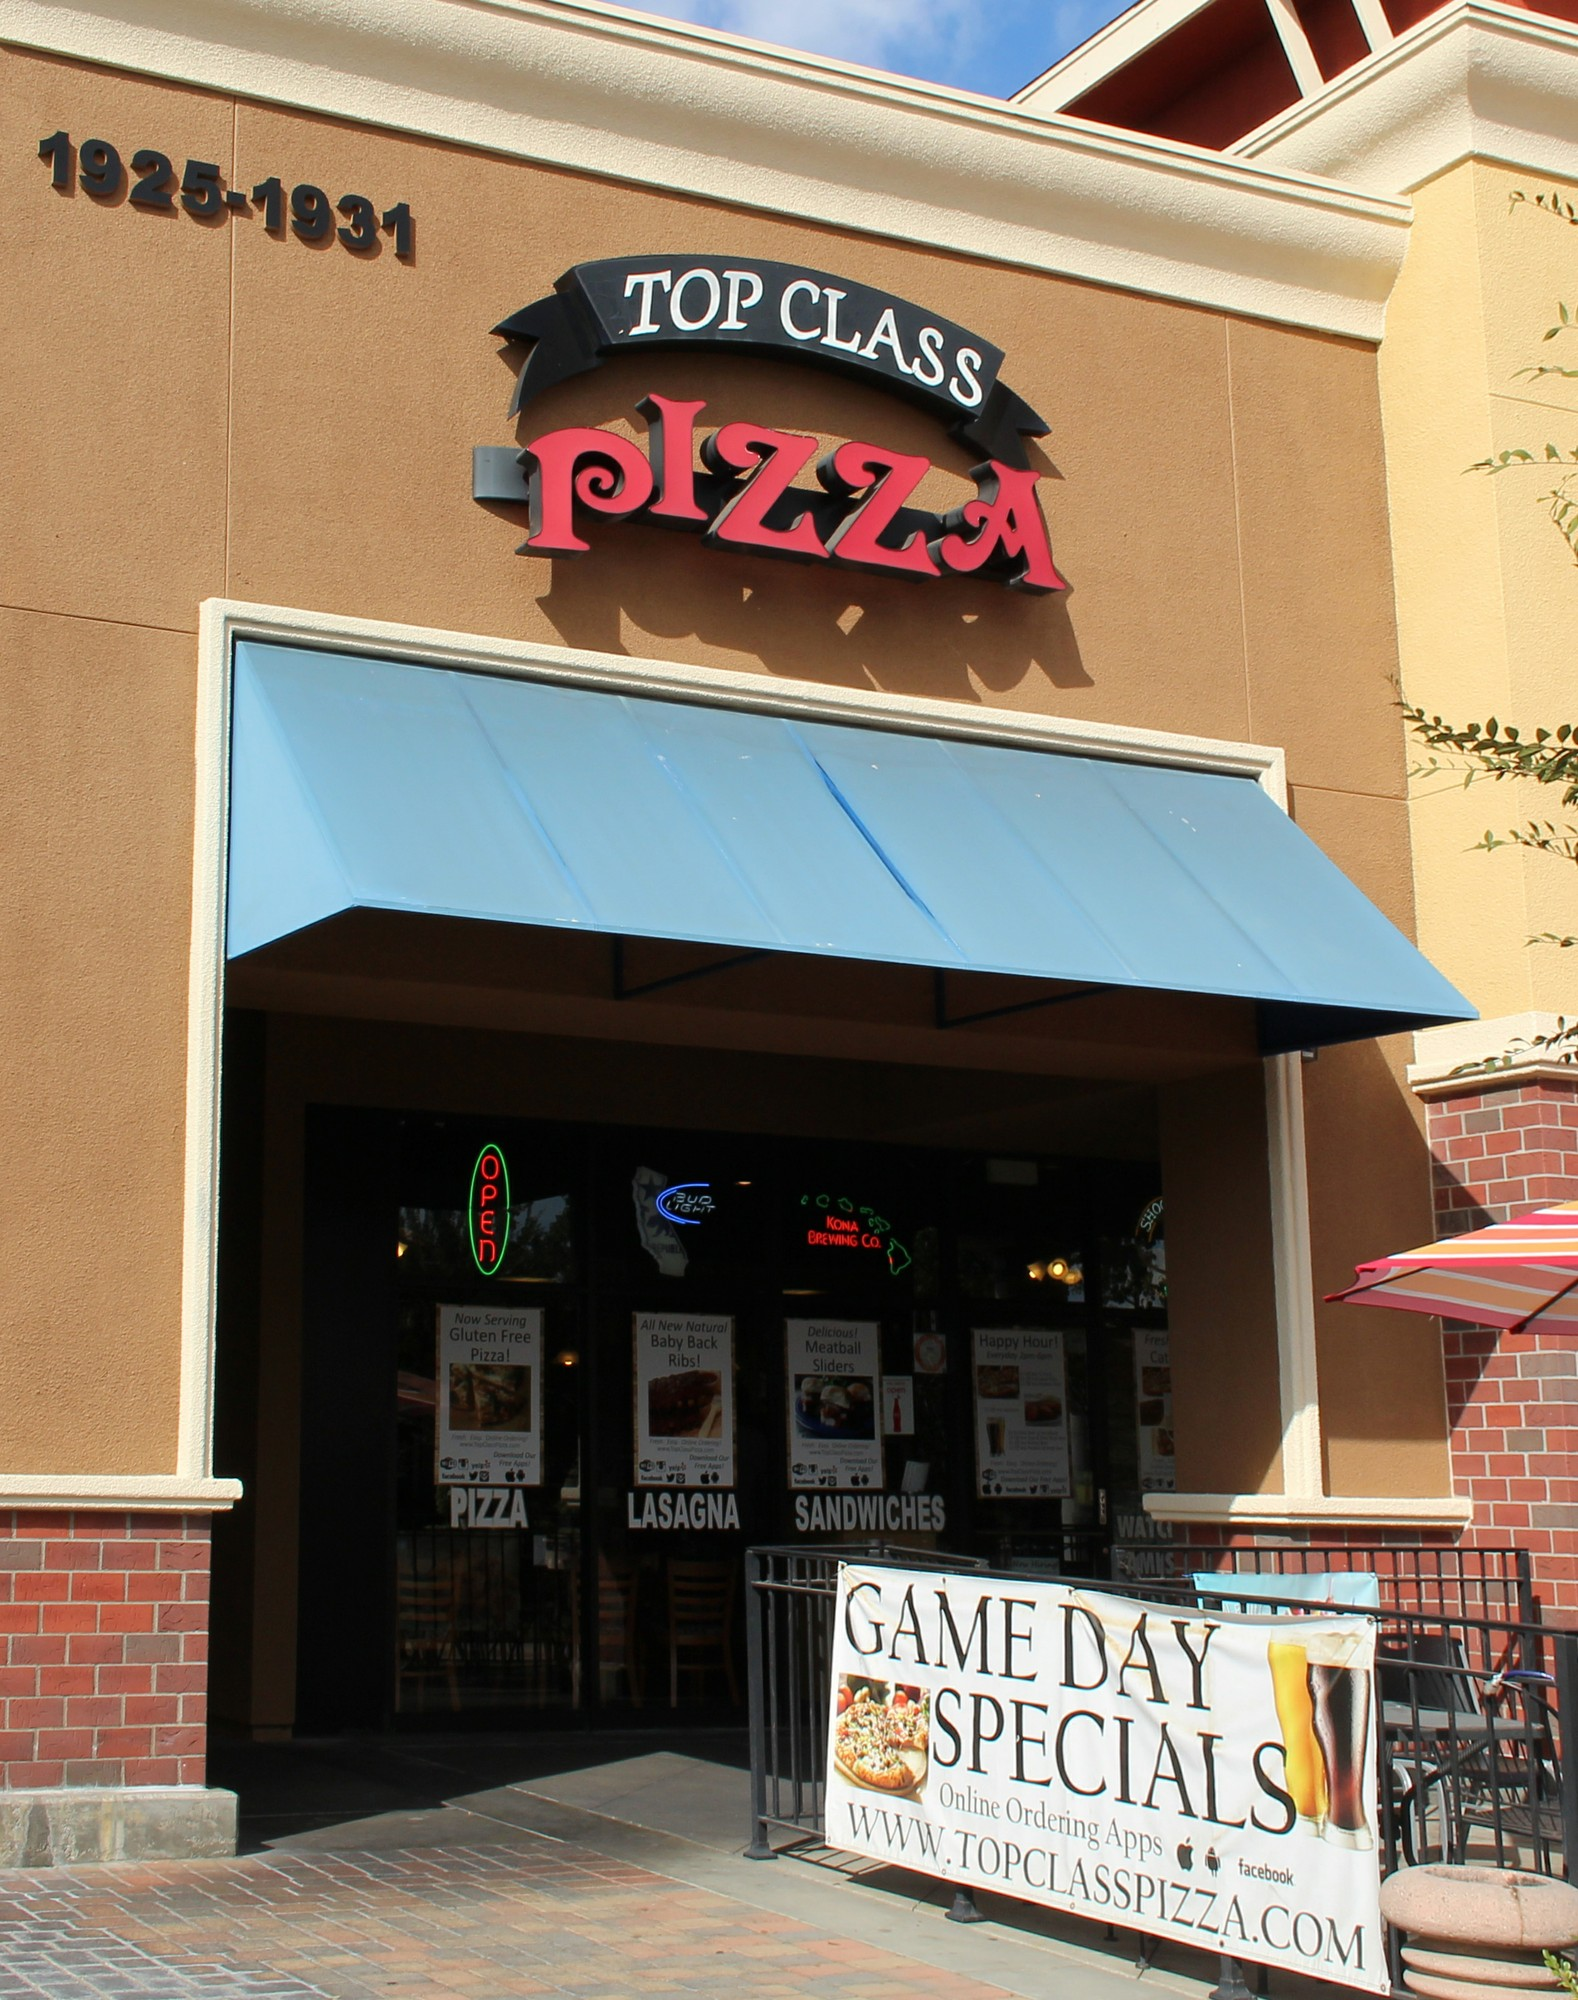 The front of Top Class Pizza Photo credit: Jeff Watson